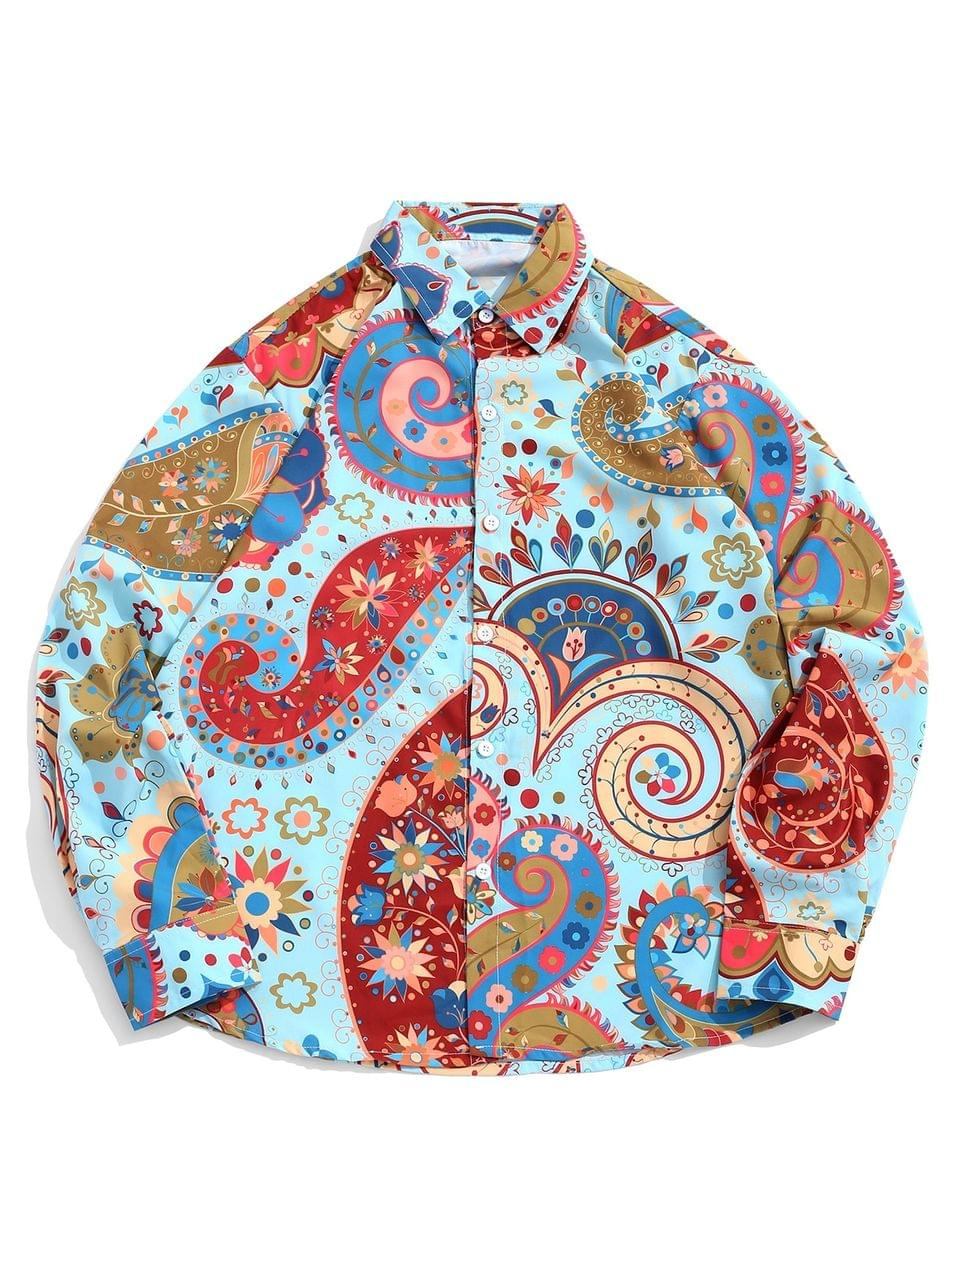 Men's Floral Paisley Swirl Print Long Sleeves Button Casual Shirt - Multi L